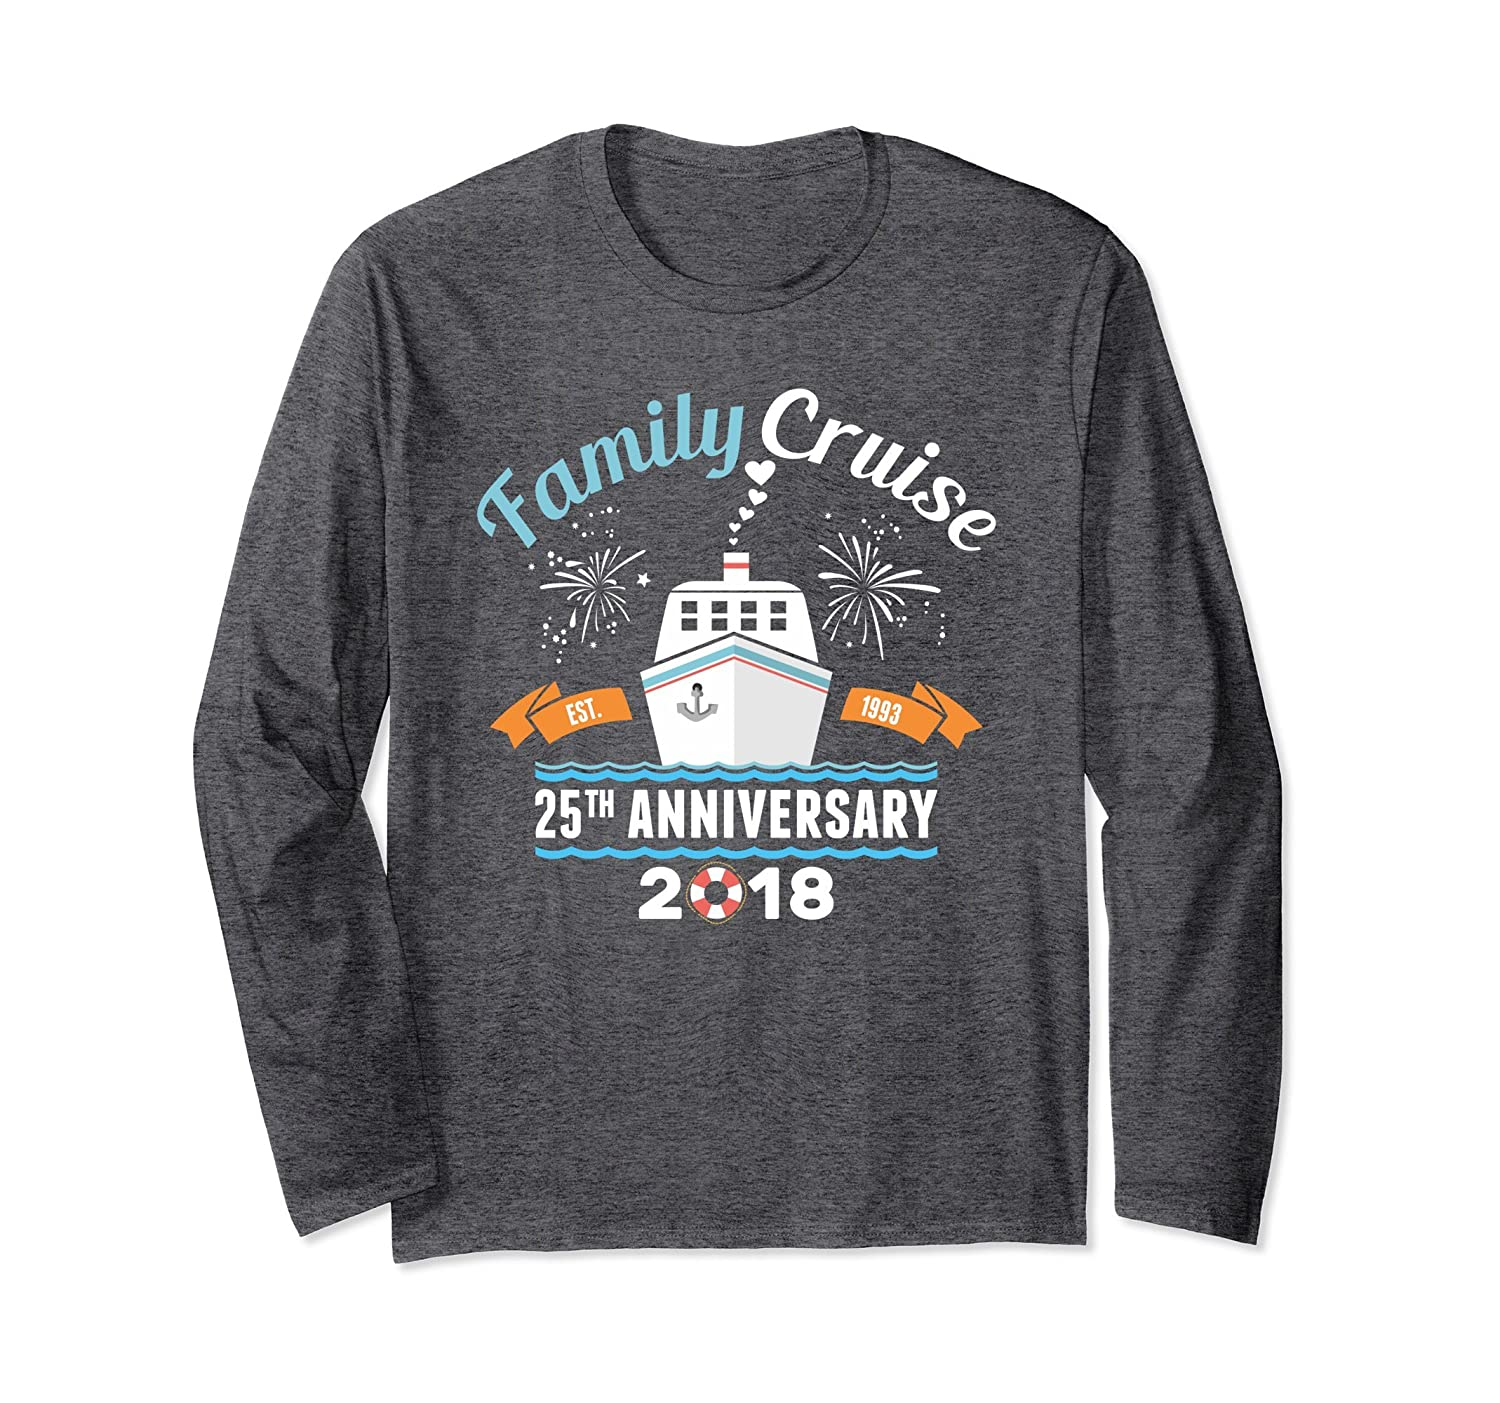 25th Wedding Anniversary Cruise 1993 2018 Long Sleeve Tshirt-fa